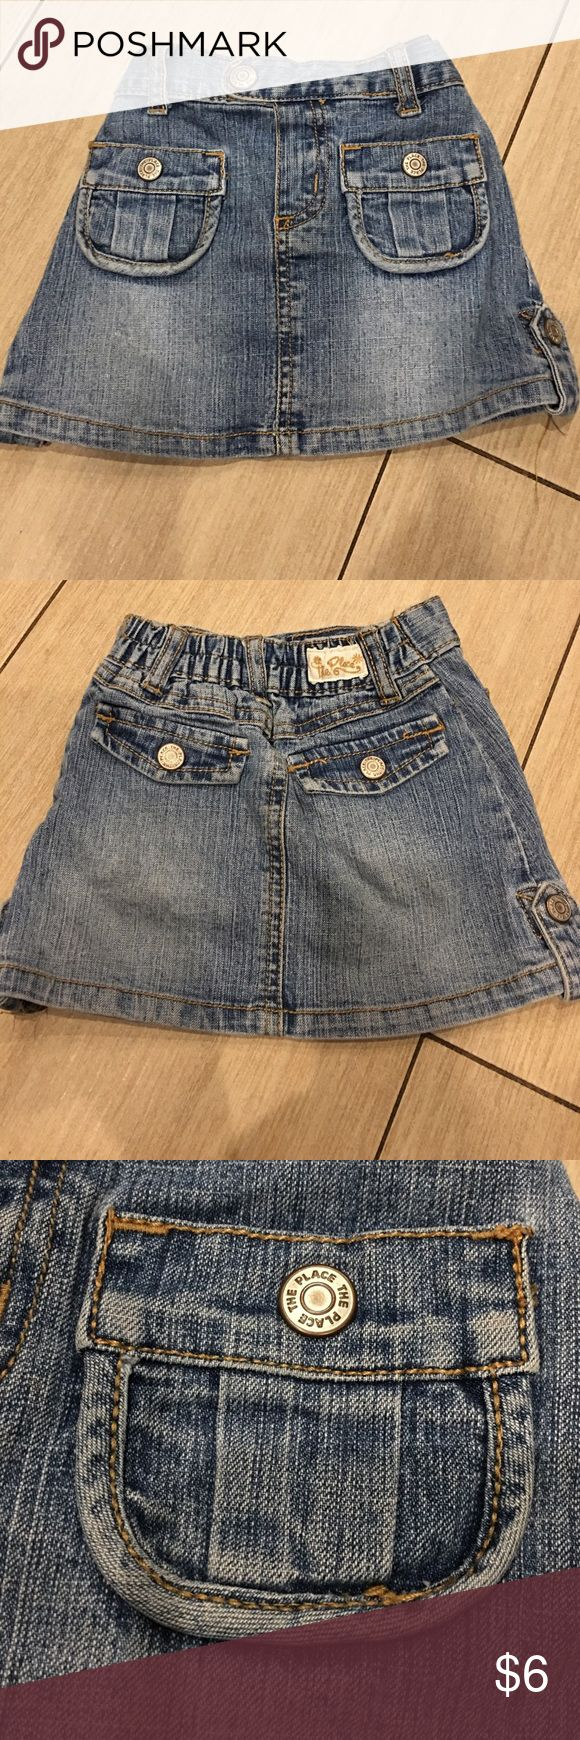 Girls Denim stretch skirt Girls Denim stretch skirt. Has under shorts. Front pockets and faux back pockets. Adorable!!!! Bundle & save Children's Place Bottoms Skirts